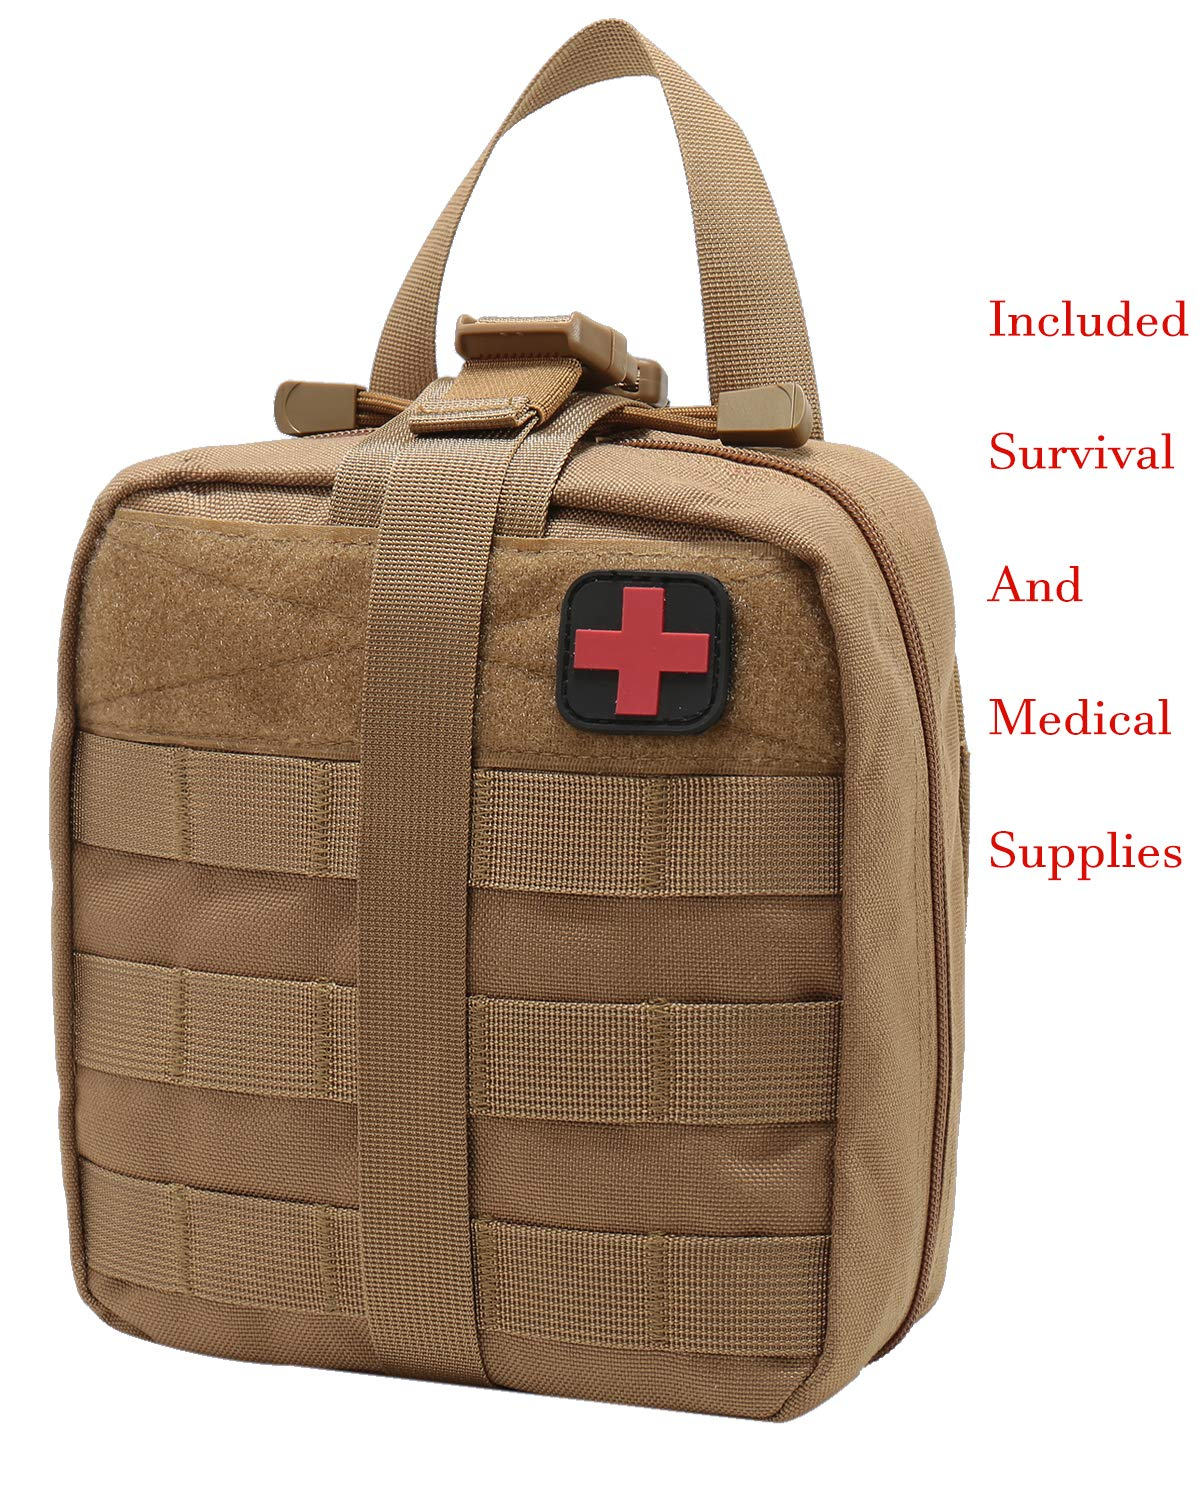 Carlebben Survival Medical Kit First Aid Kit Trauma Kit EMT Pouch Molle Ifak TAN